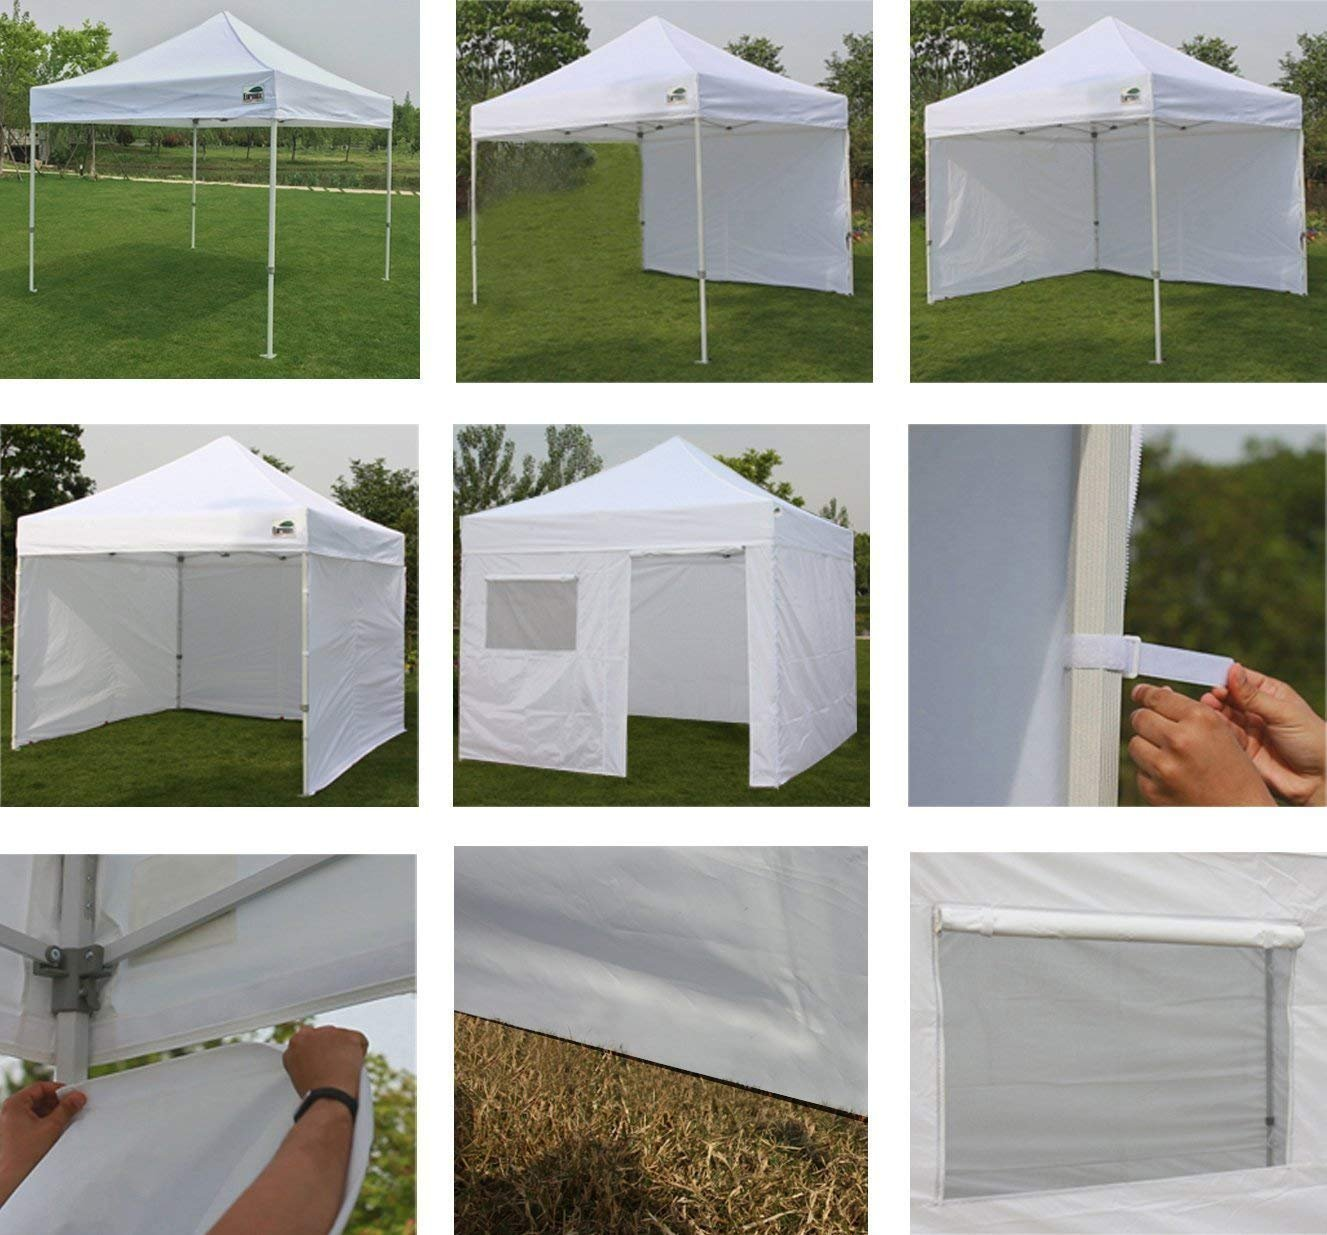 Eurmax 10'x10' Ez Pop Tent Commercial Instant Canopies with 4 Removable Zipper End Side Walls and Roller Bag Bonus 4 SandBags Weight, 1-White by Eurmax (Image #5)